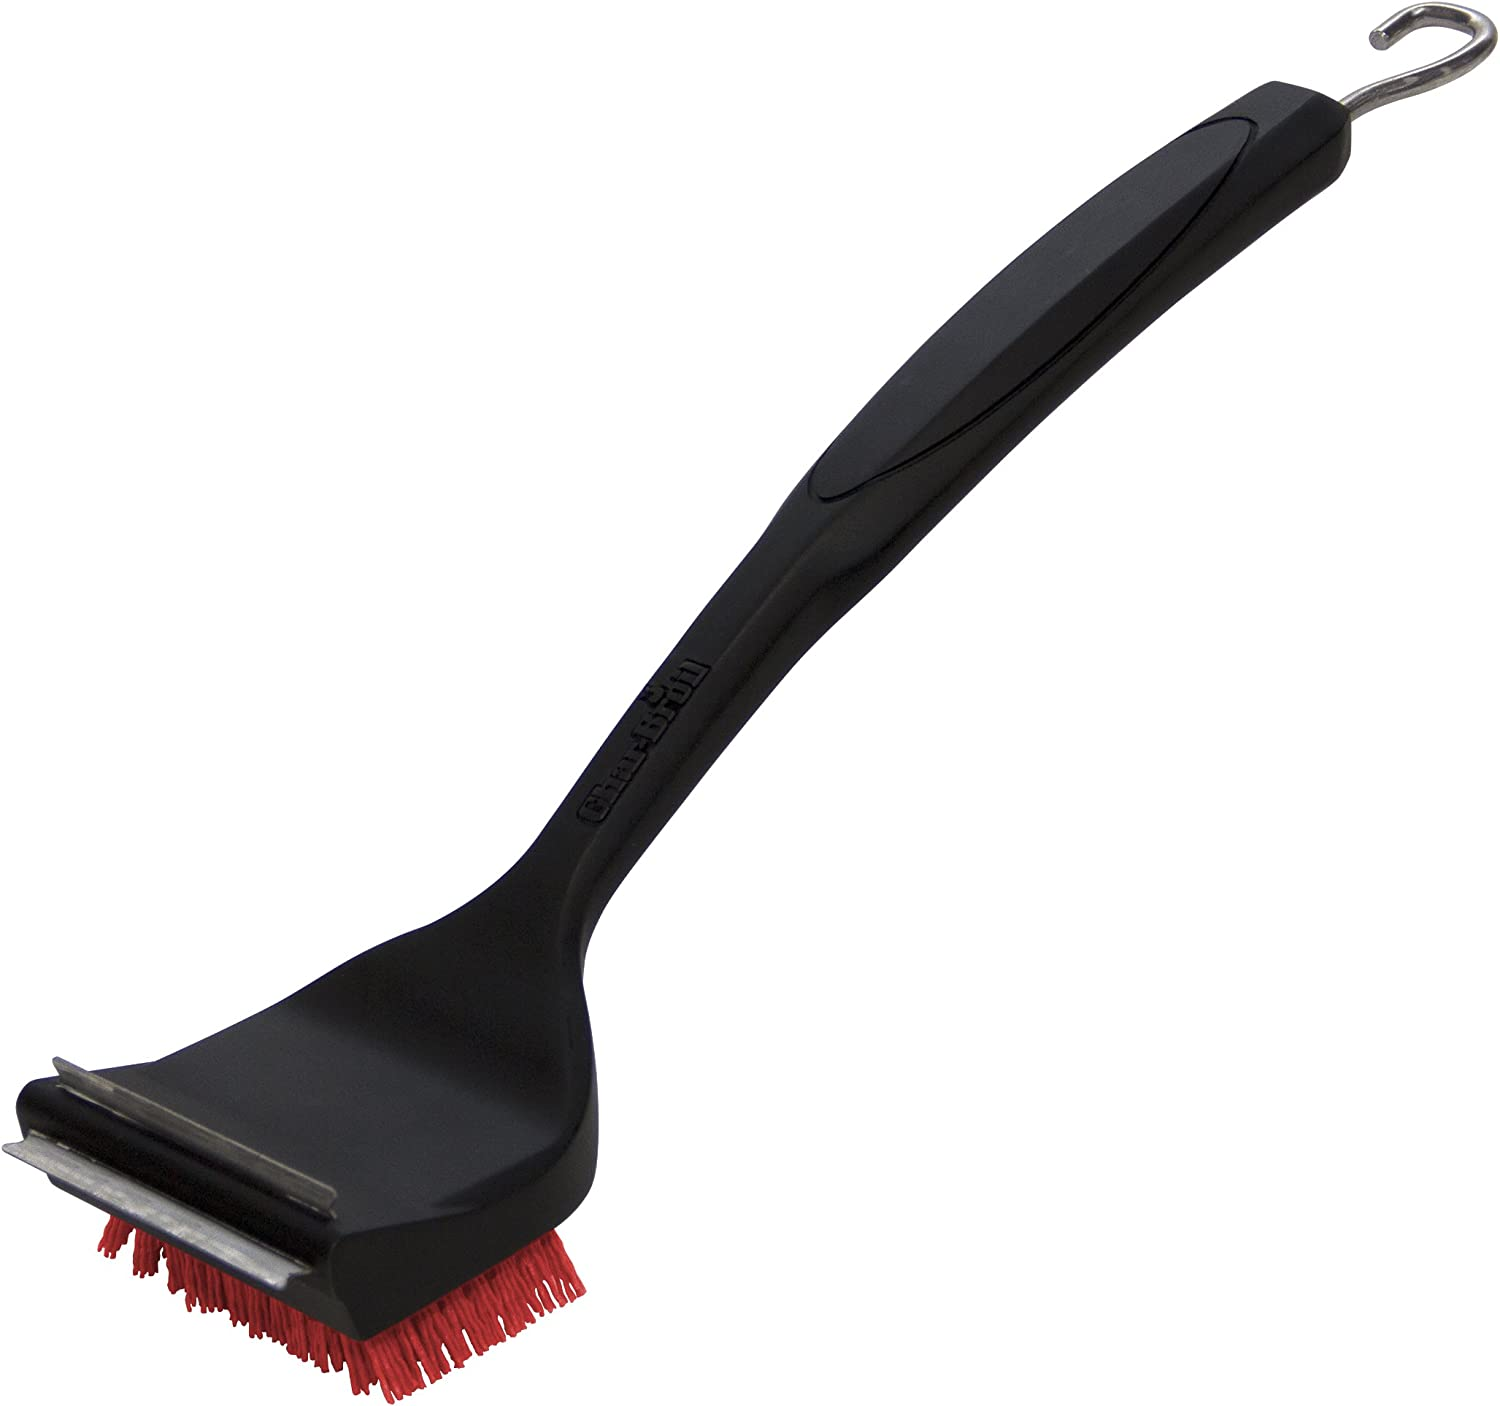 Char-Broil 8666894 SAFER Replaceable Head Nylon Bristle Grill Brush with Cool Clean Technology, One Size : Garden & Outdoor